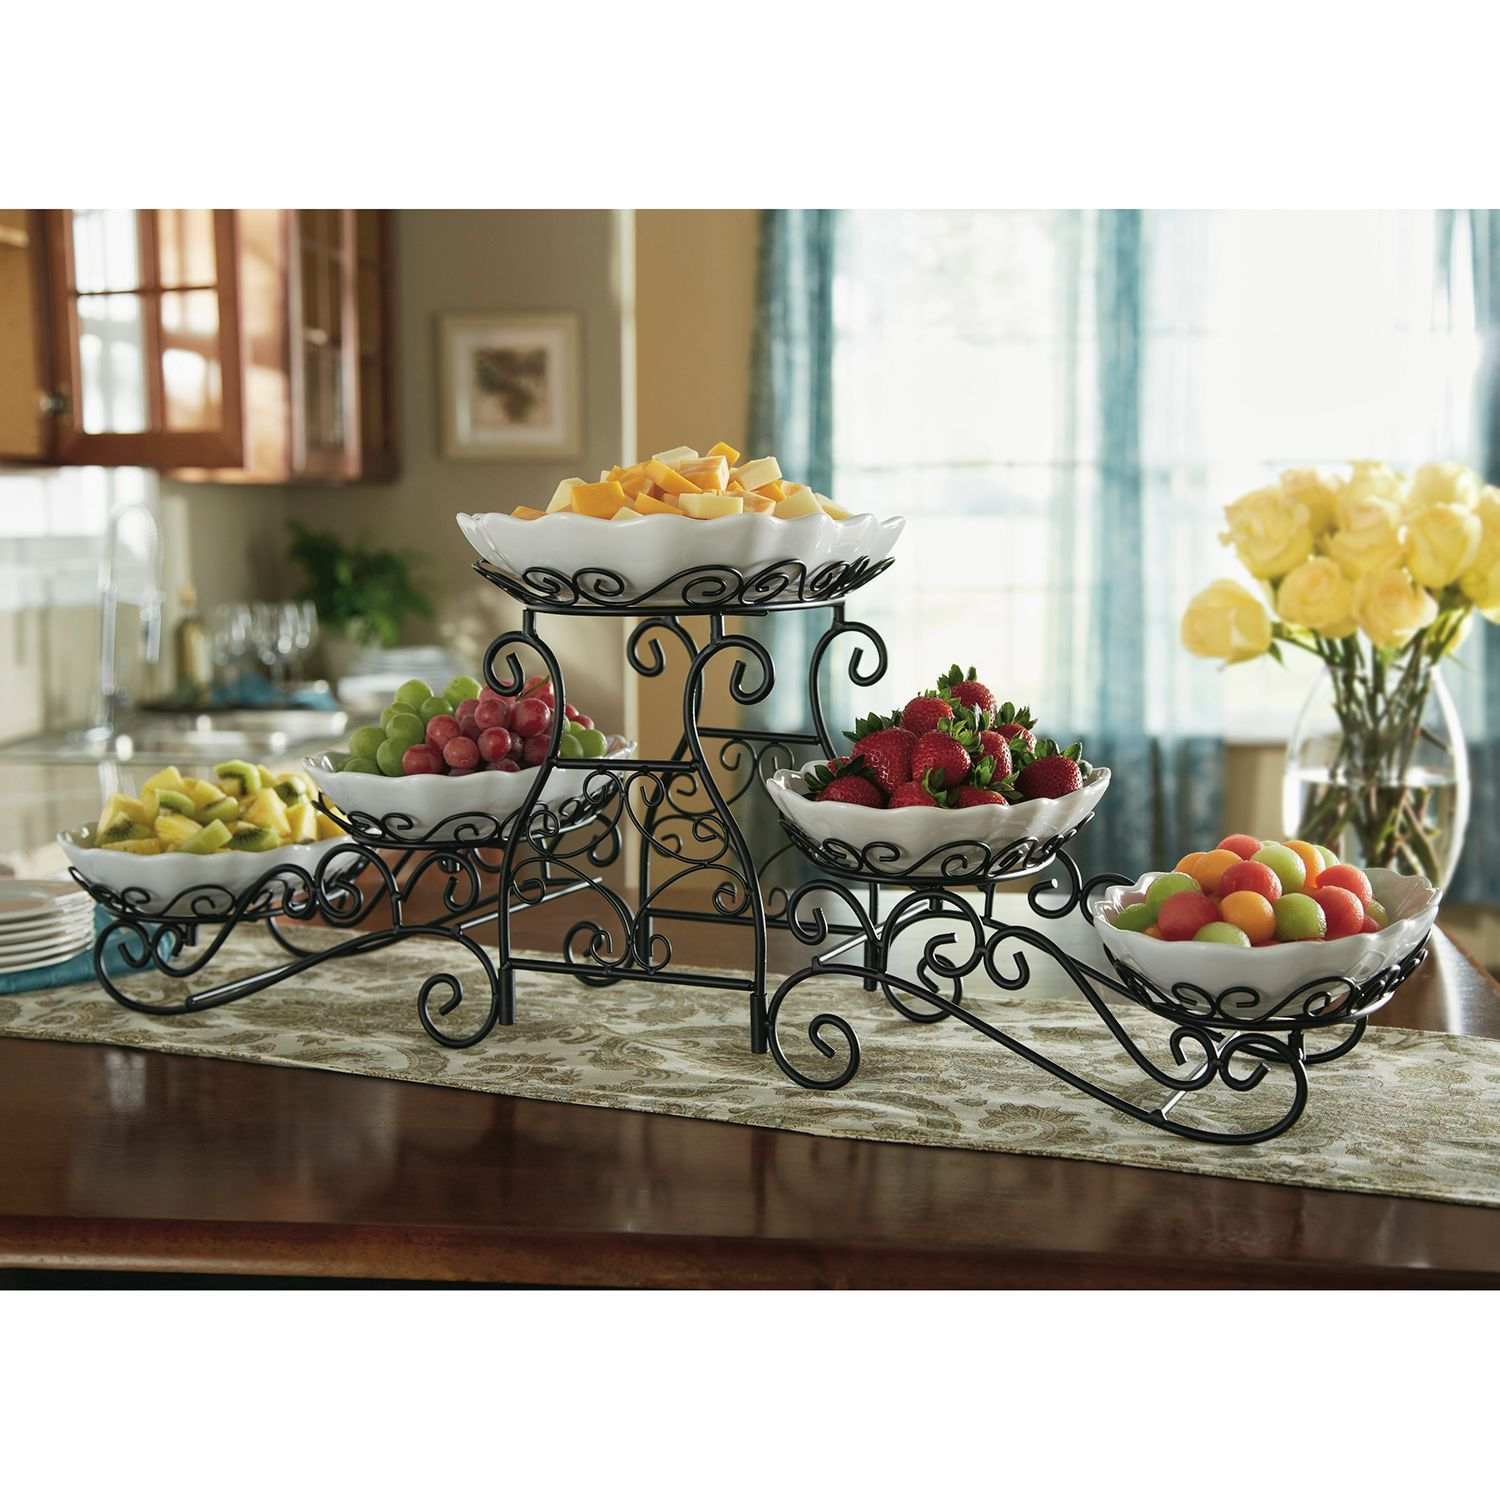 Tiered Buffet Server Kitchen Gadgets And Serving Dishes Decor Buffet Server Wrought Iron Decor